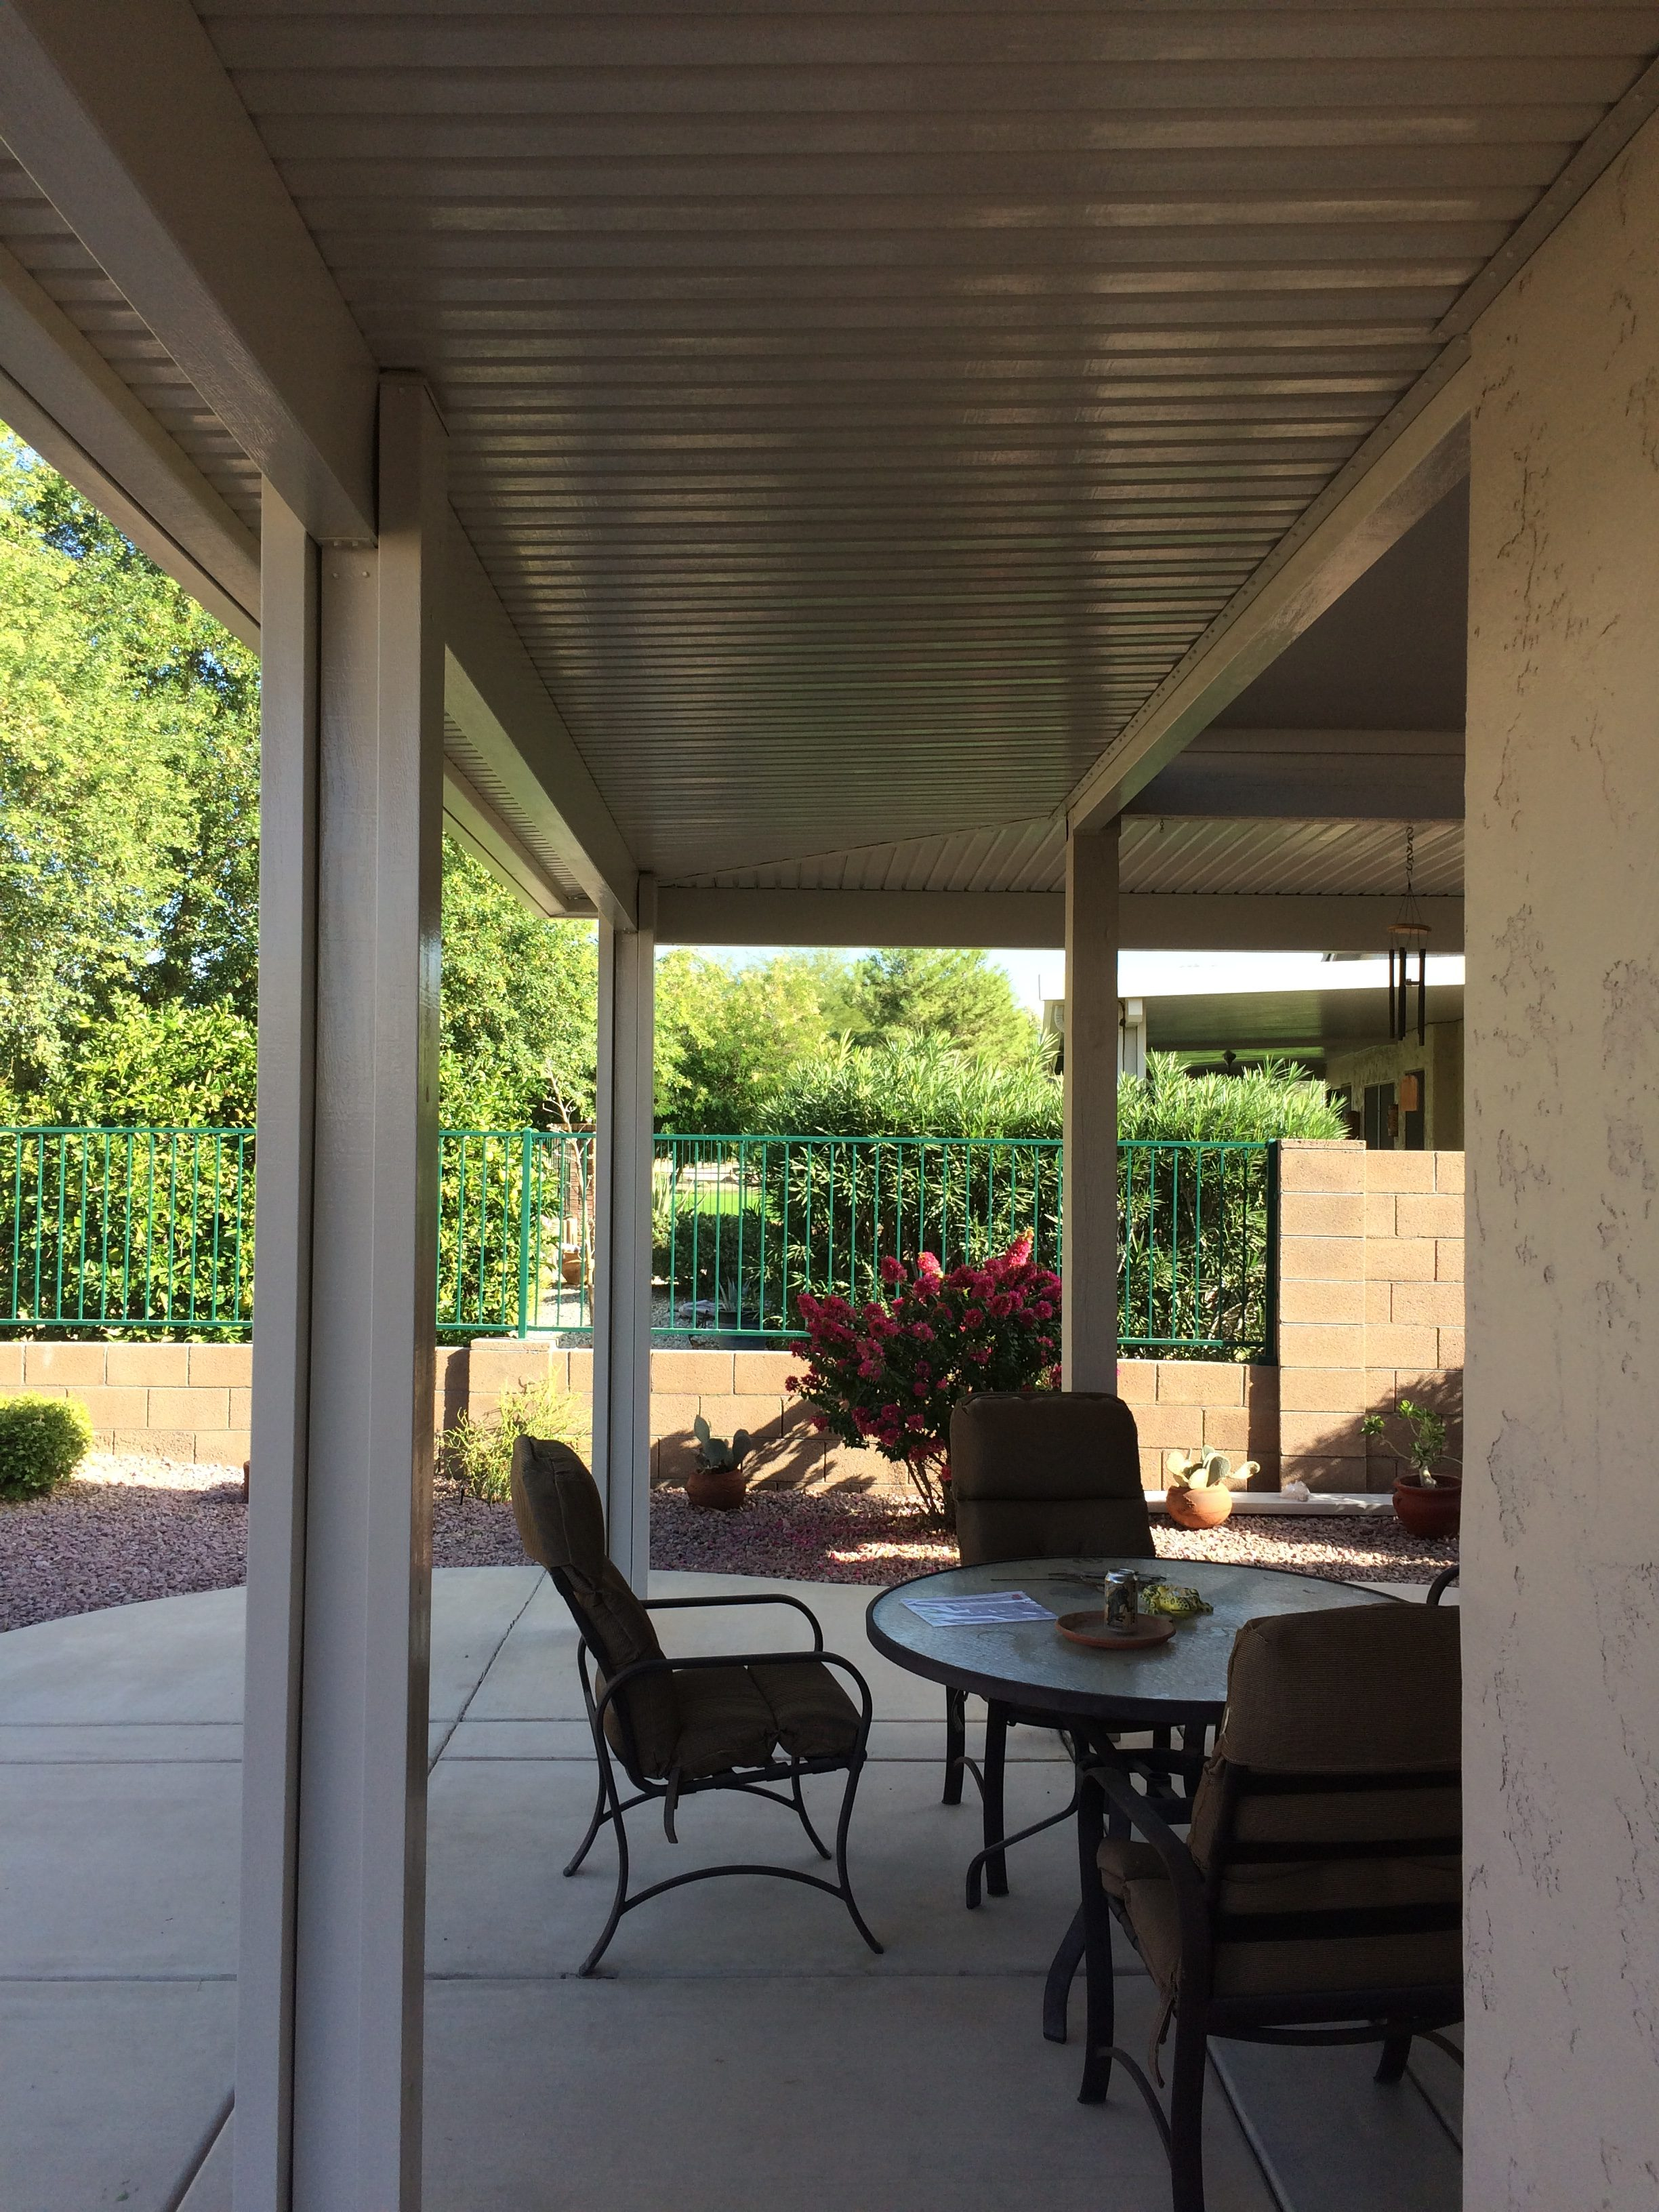 Customer Feedback | Booth Built Patio Products